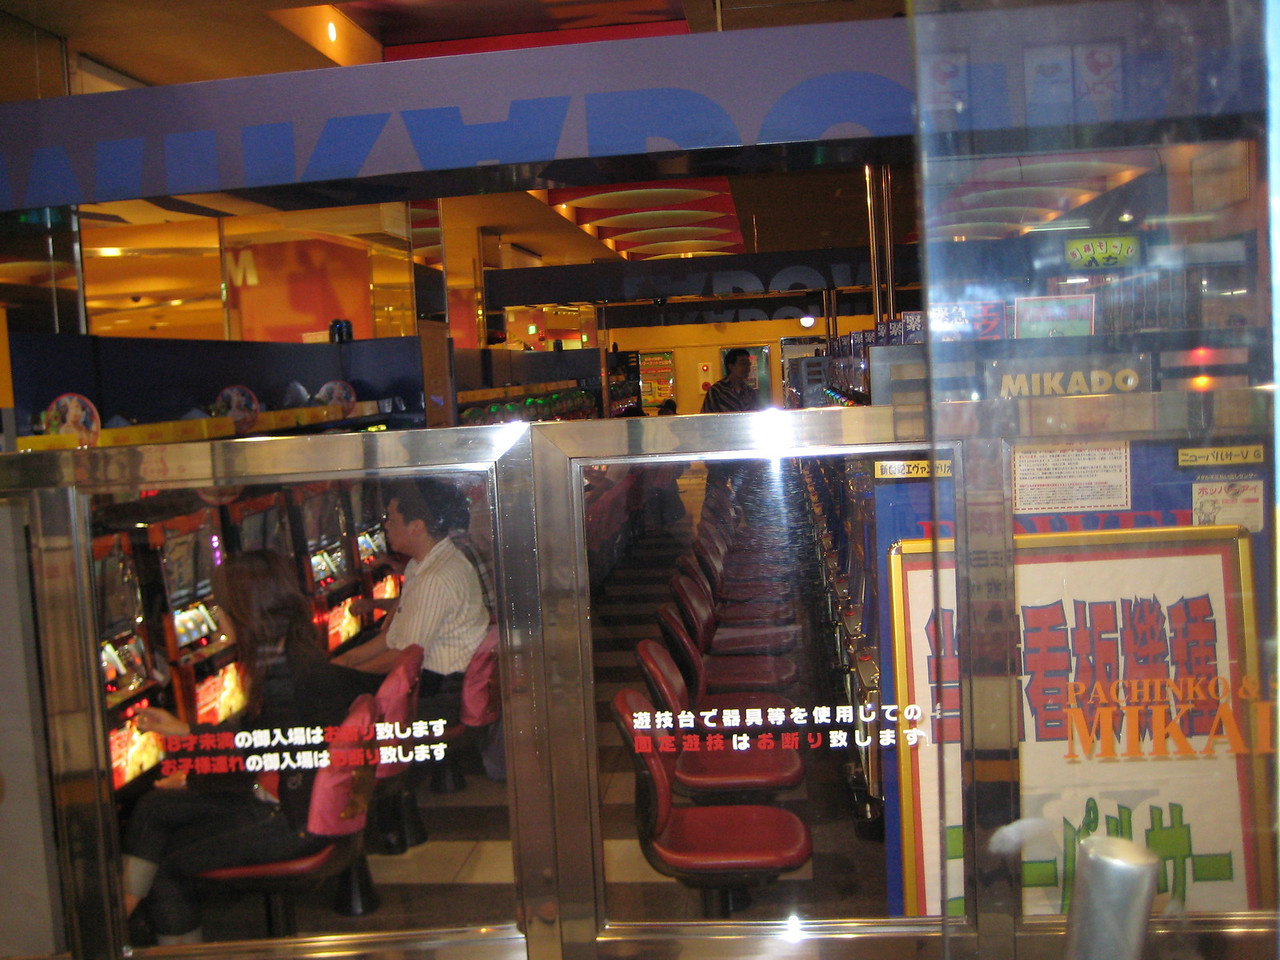 Immediately upon exiting the bus, we see a pachinko parlor. We took a brief look at these odd vertical pinball machines, but in the end decided against attempting to play.